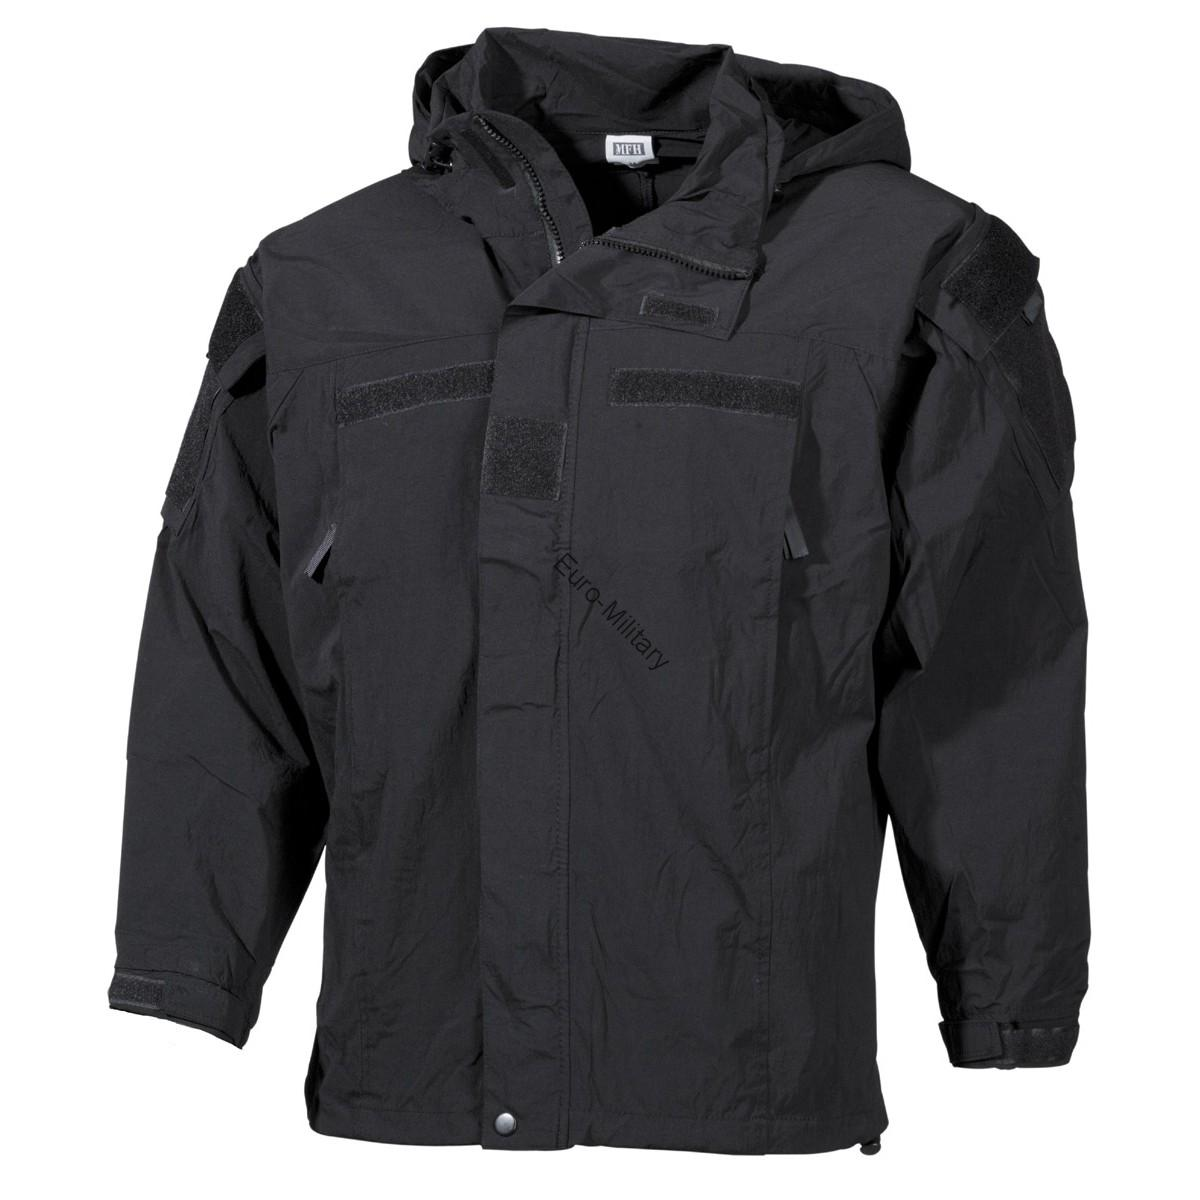 Tactical Military Soft Shell Waterproof Jacket GEN 3 - Black